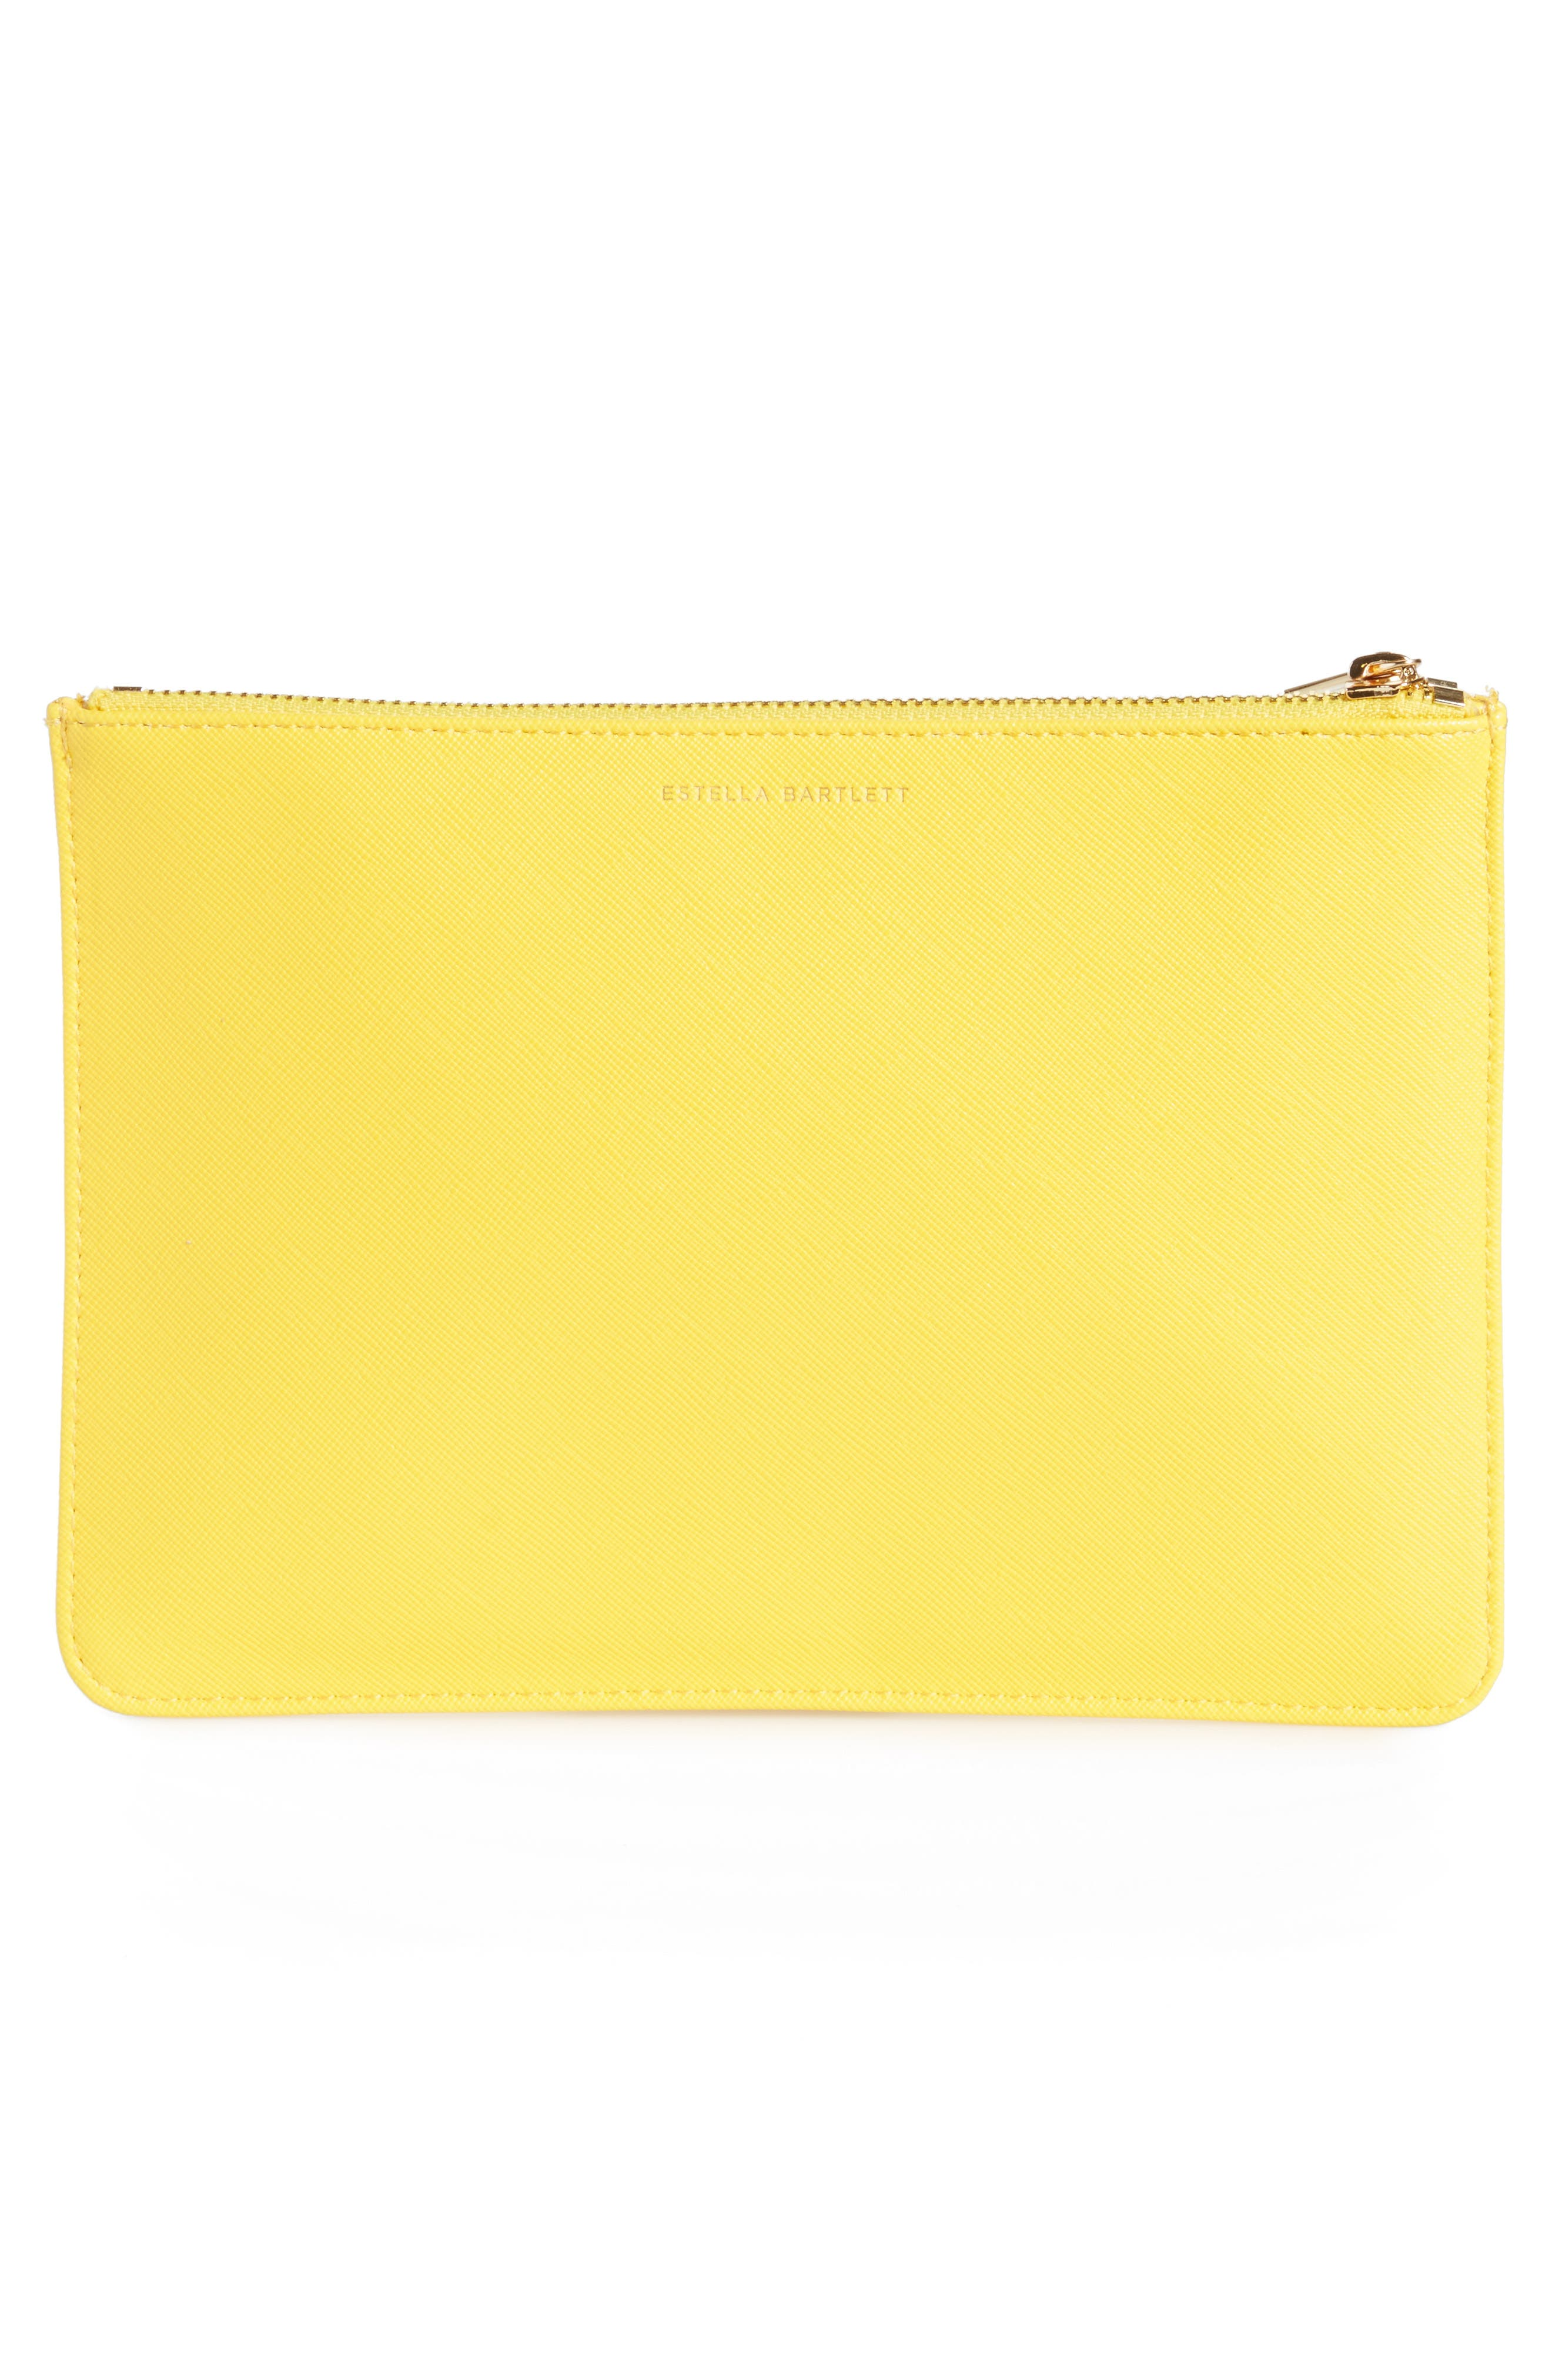 Alternate Image 3  - Estella Bartlett Happy Thoughts Medium Faux Leather Pouch